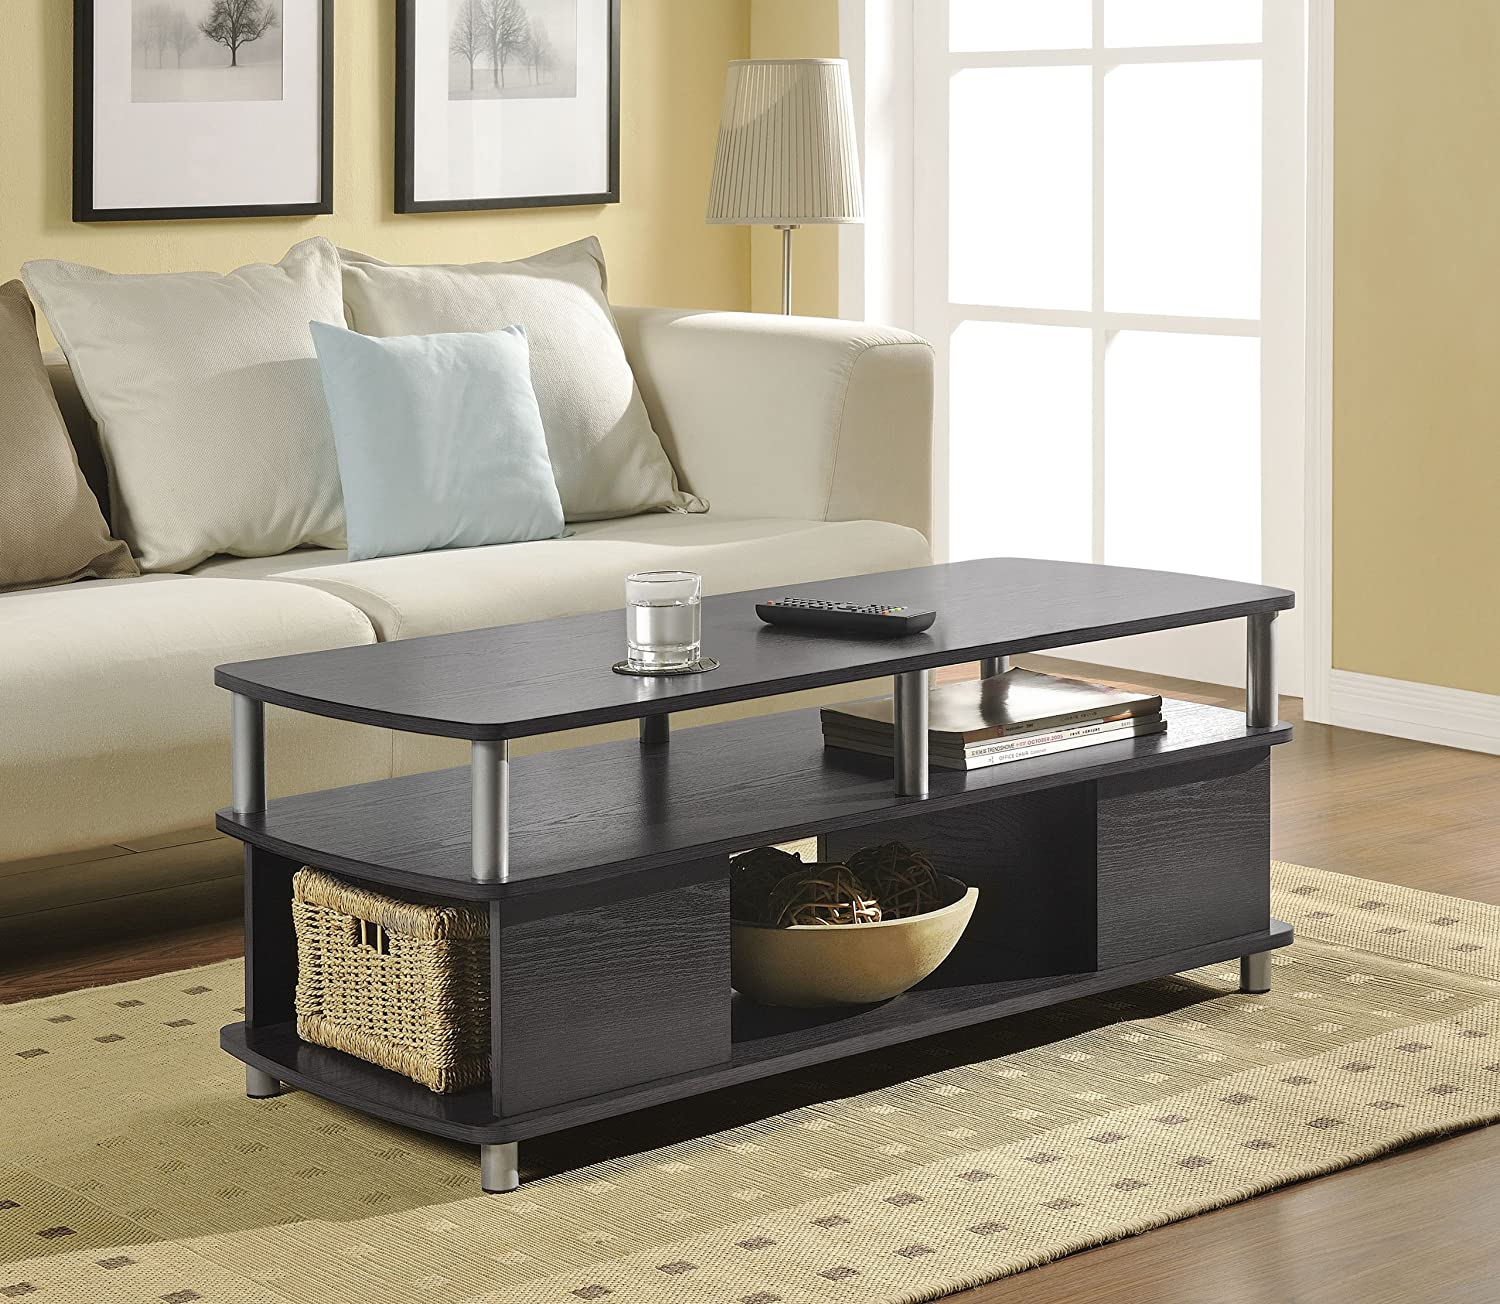 Amazon.com: Altra Carson Coffee Table, Espresso/Silver: Kitchen U0026 Dining